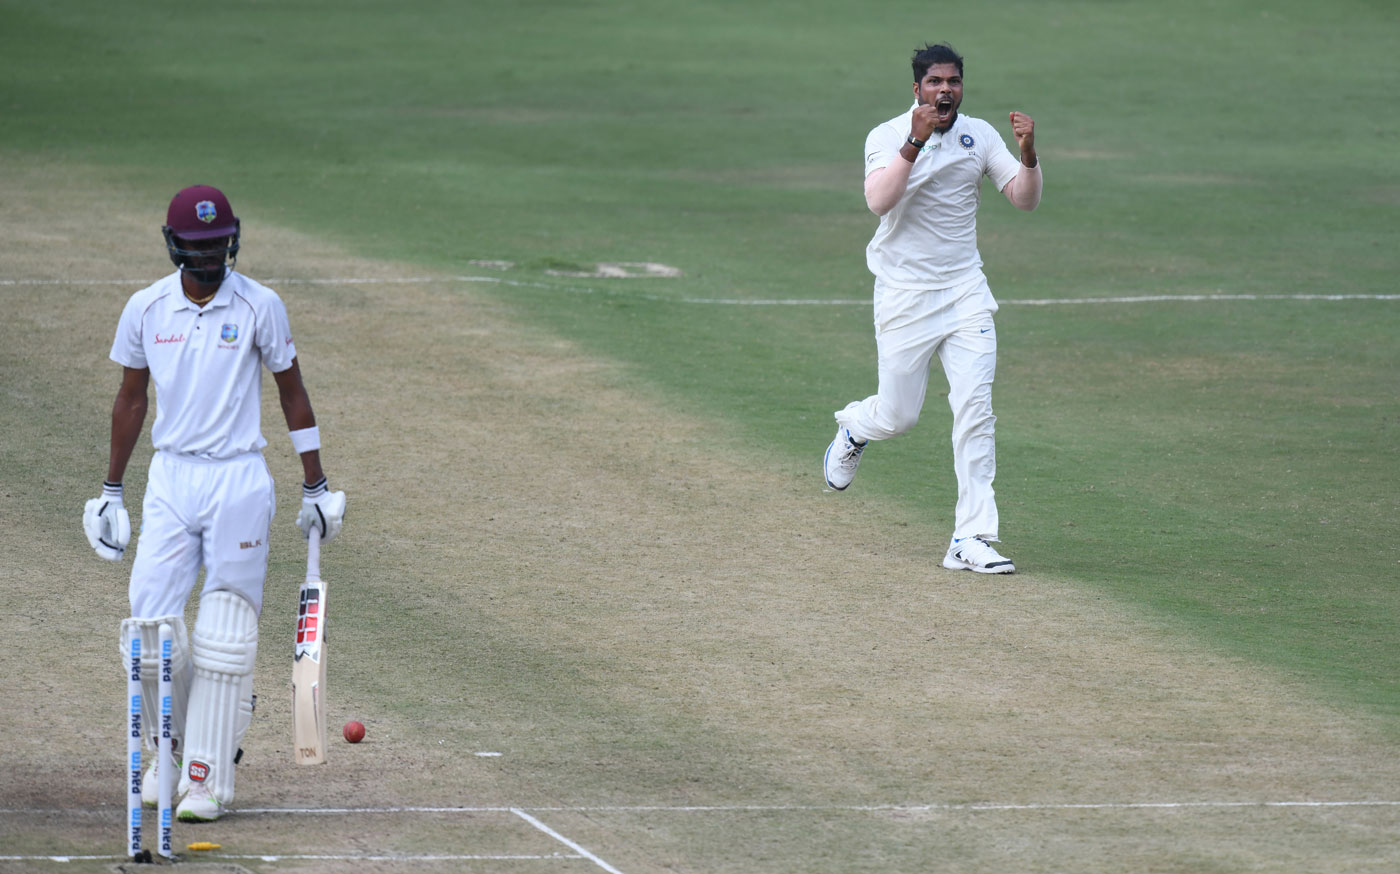 Umesh Yadav Is Right Up There To Be Featuring In Australia : Virat Kohli 1